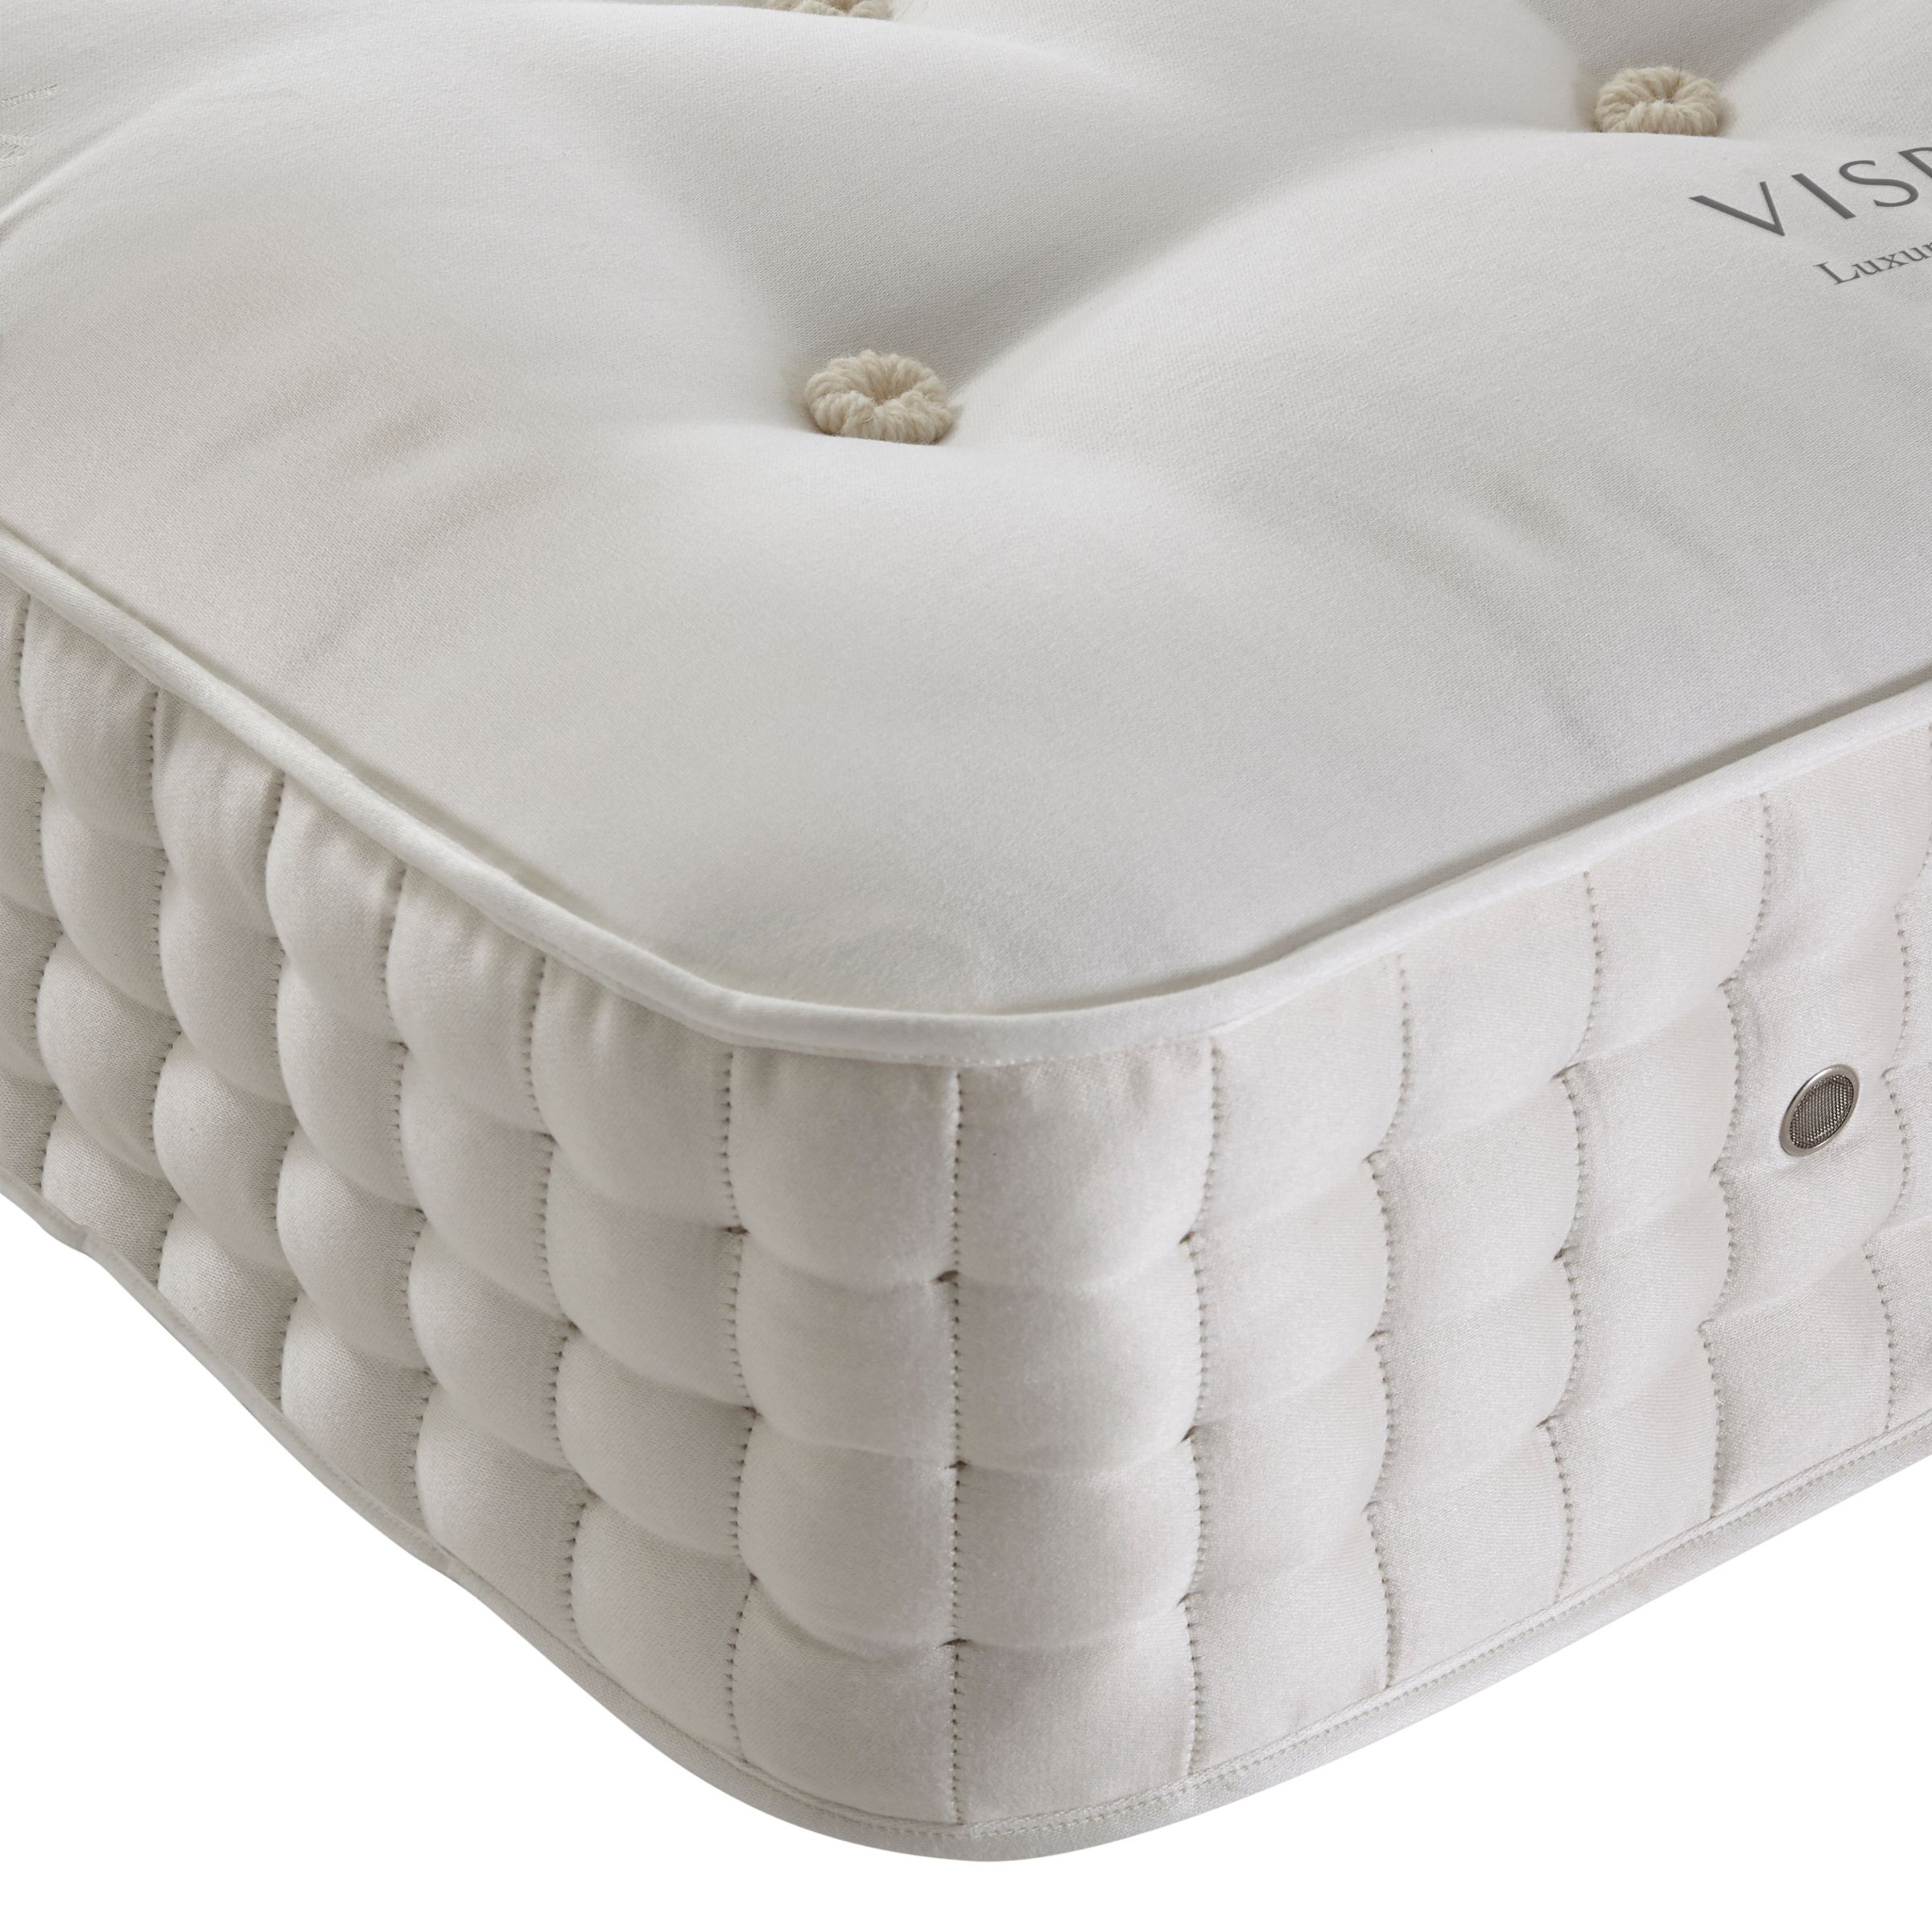 Vi-Spring Stowe Superb Mattress, Super Kingsize